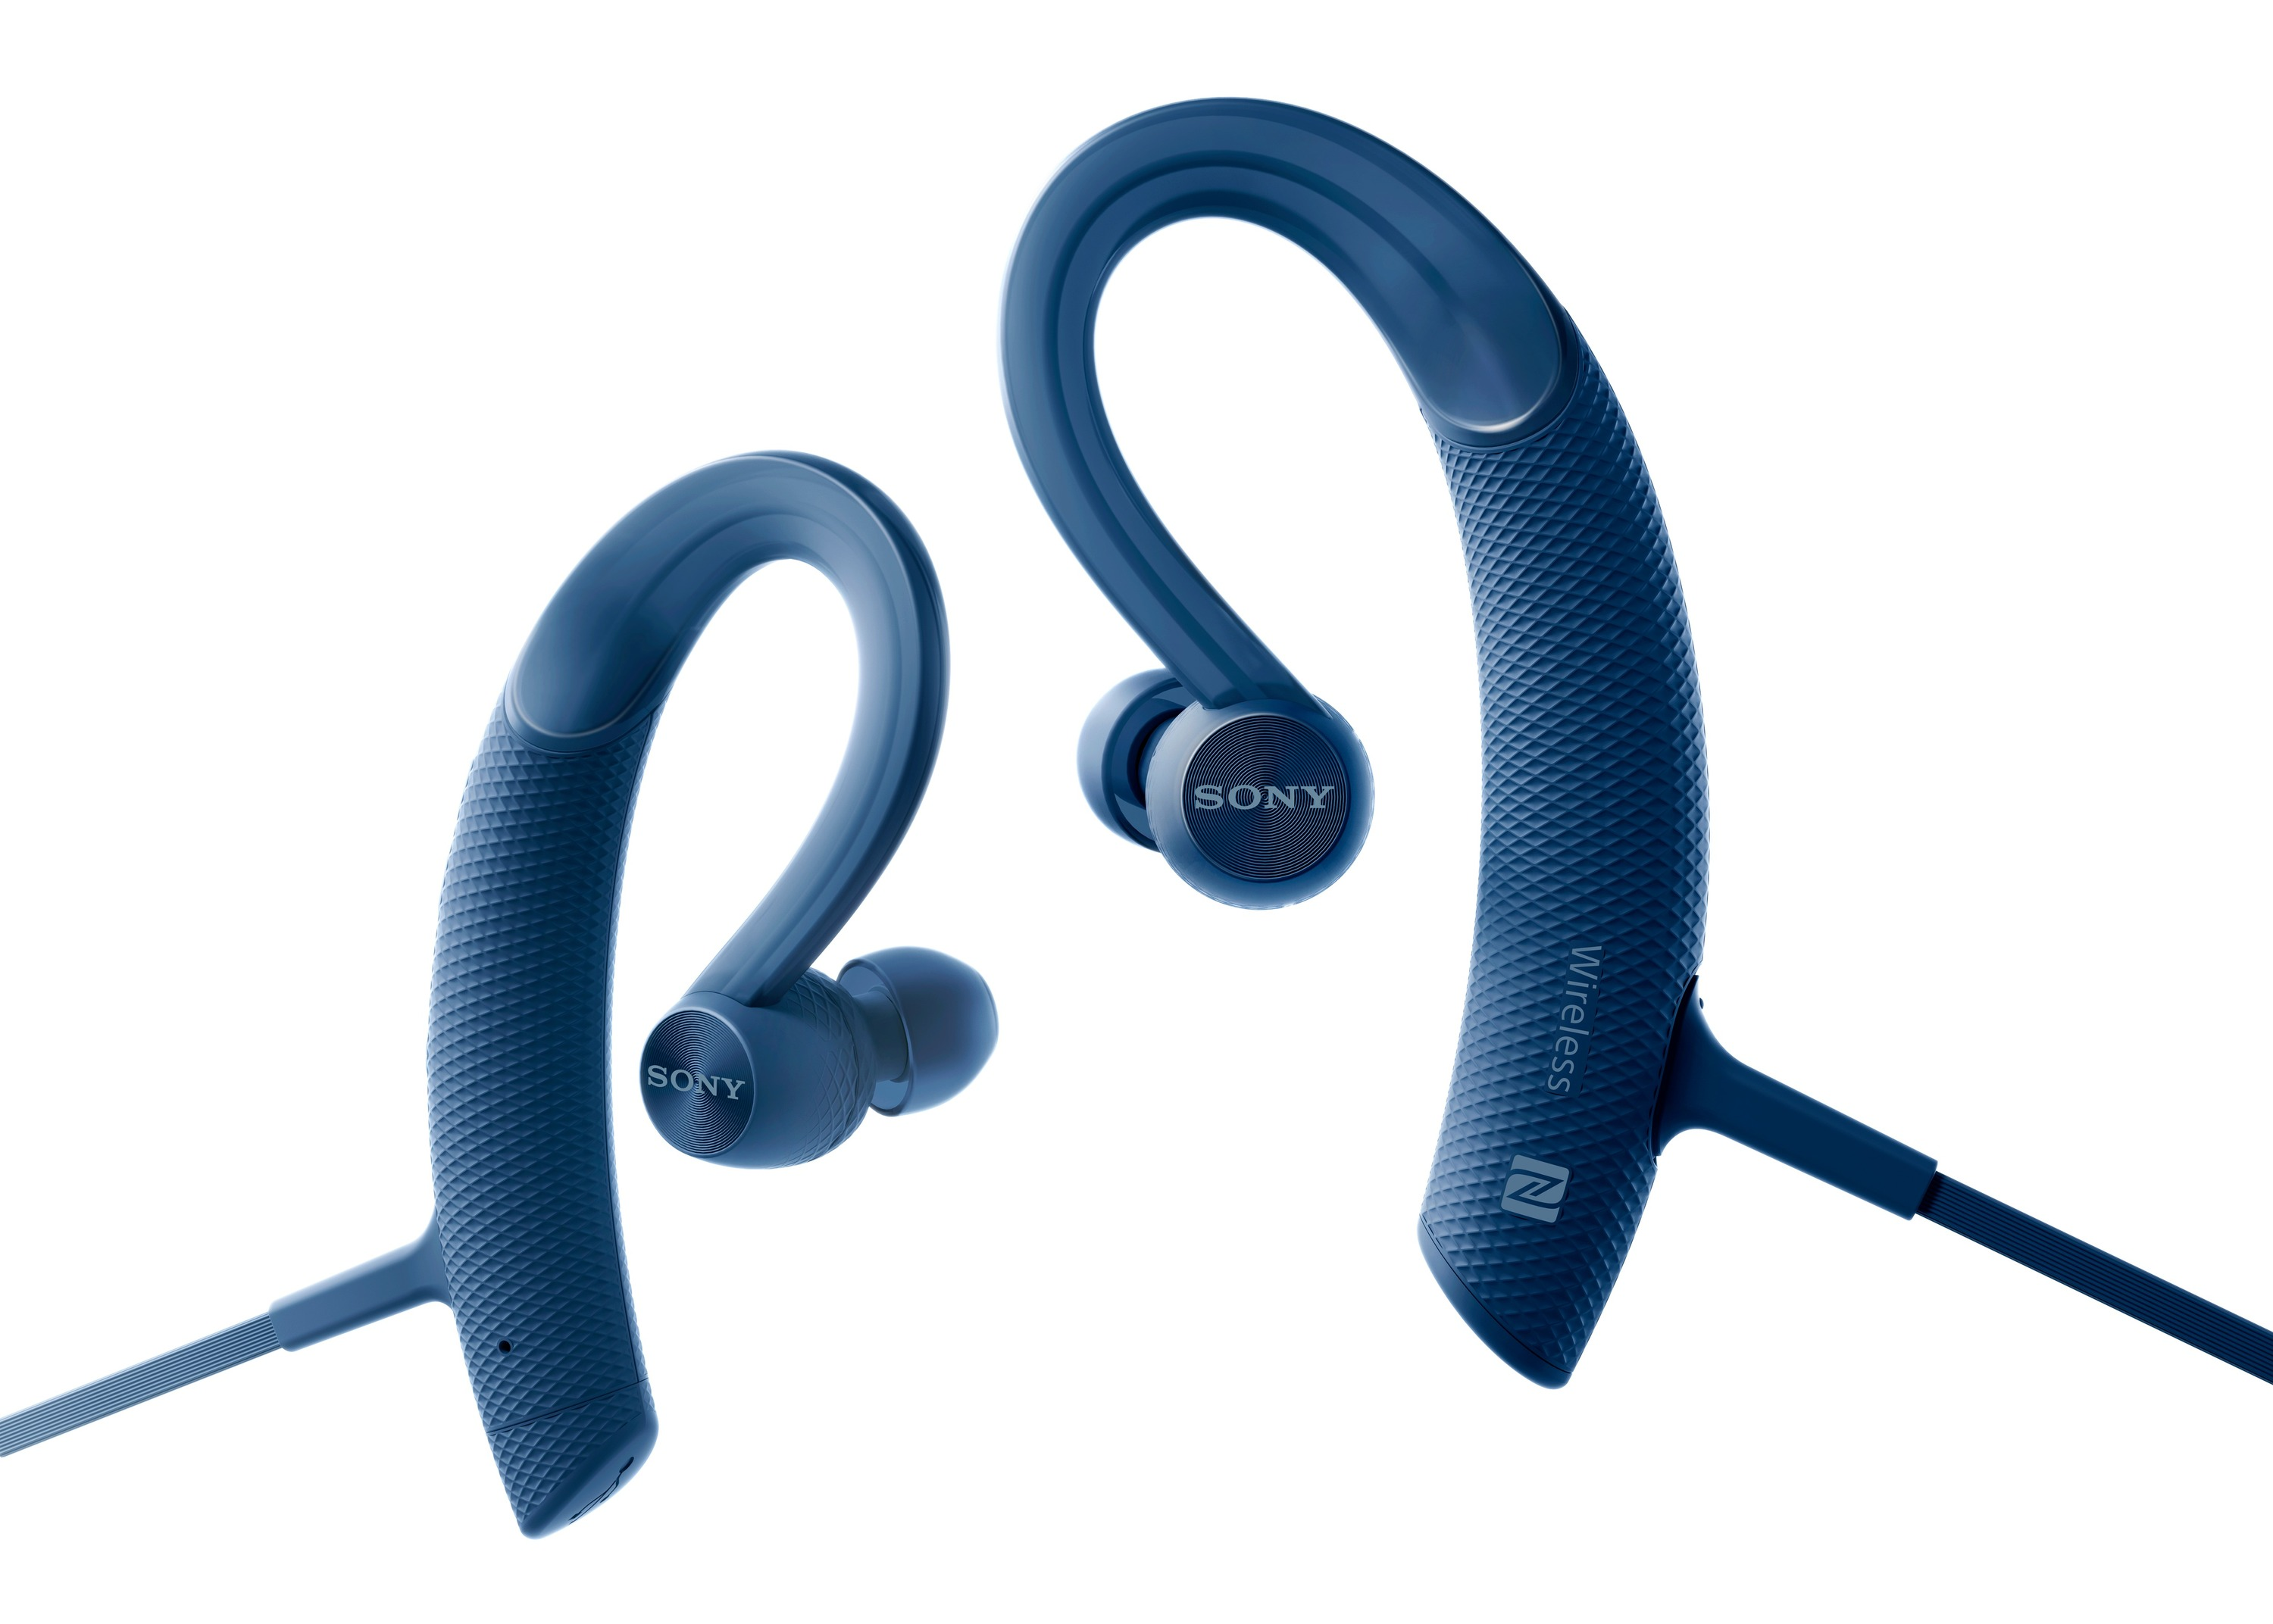 Earphones sport bluetooth wireless sony - bluetooth headphones sport sony